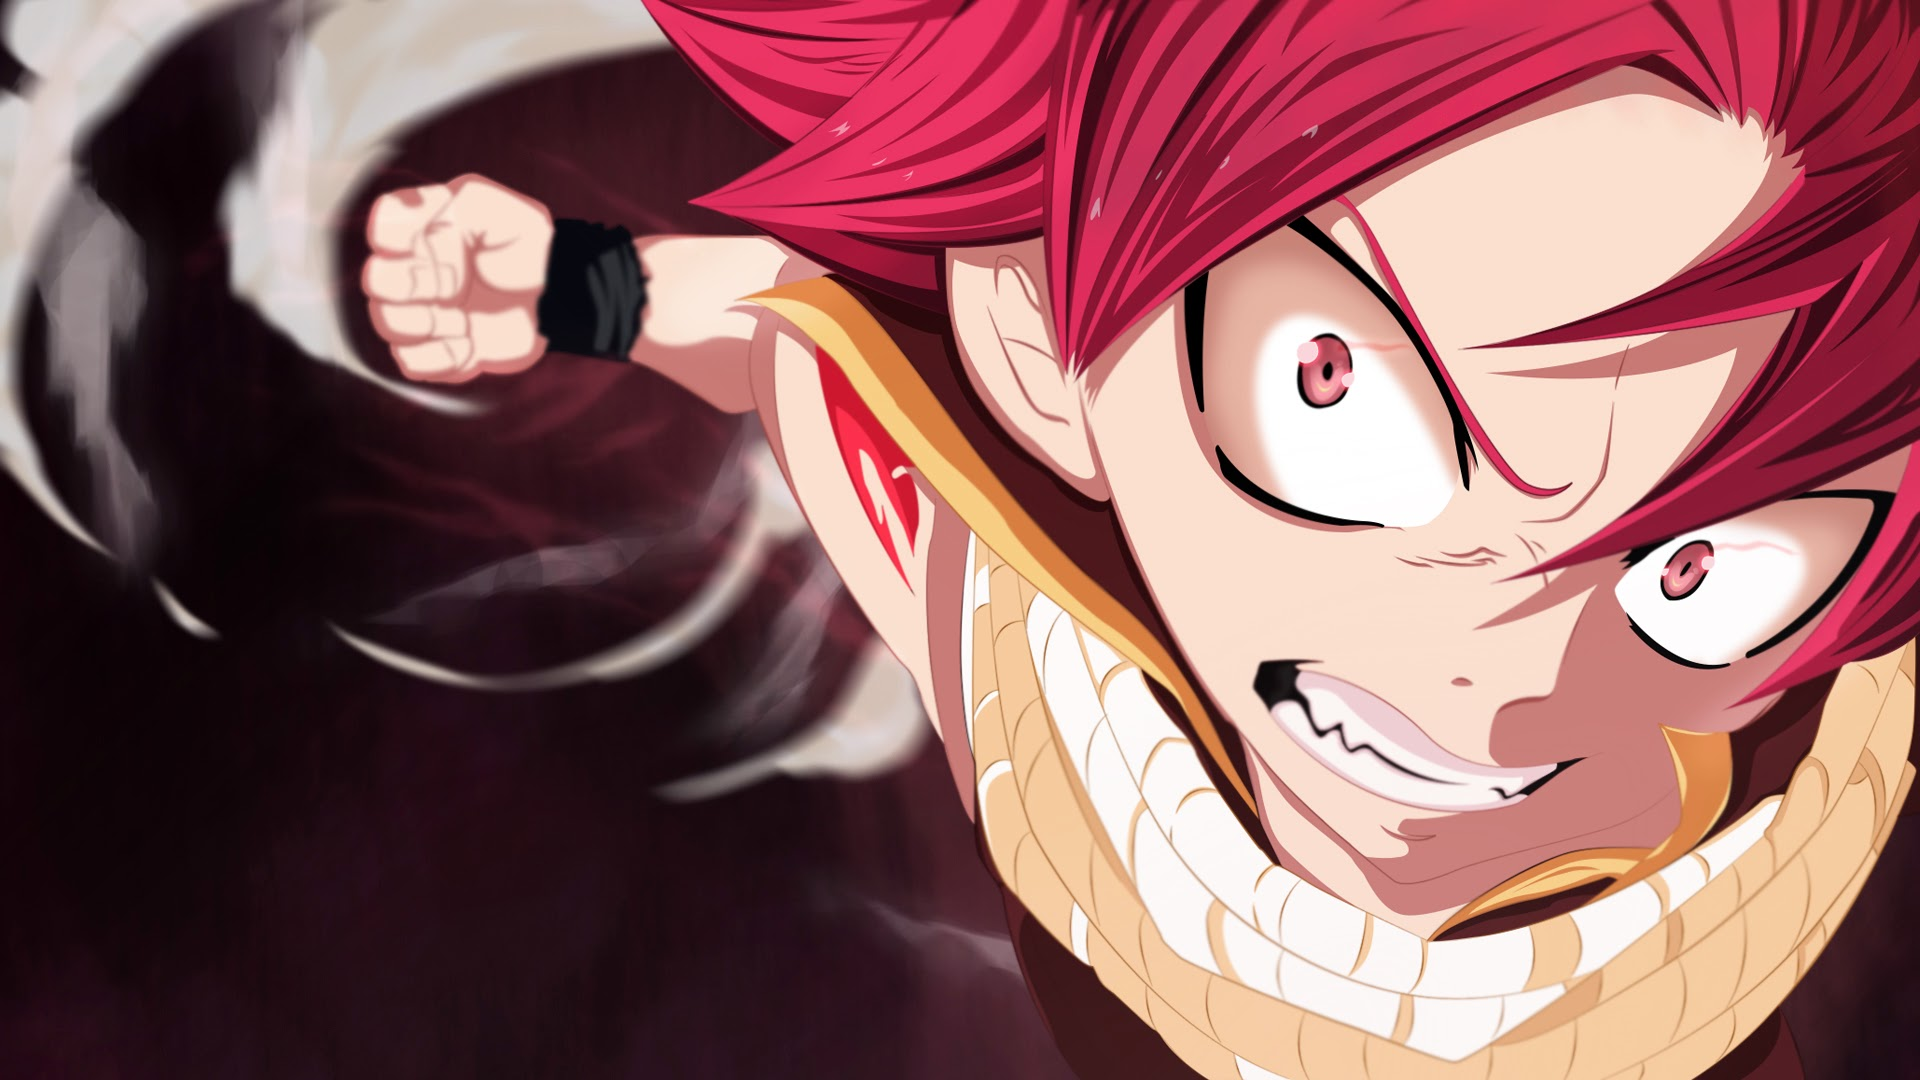 natsu dragneel anime fairy tail hd wallpaper image picture 1920x1080 1920x1080